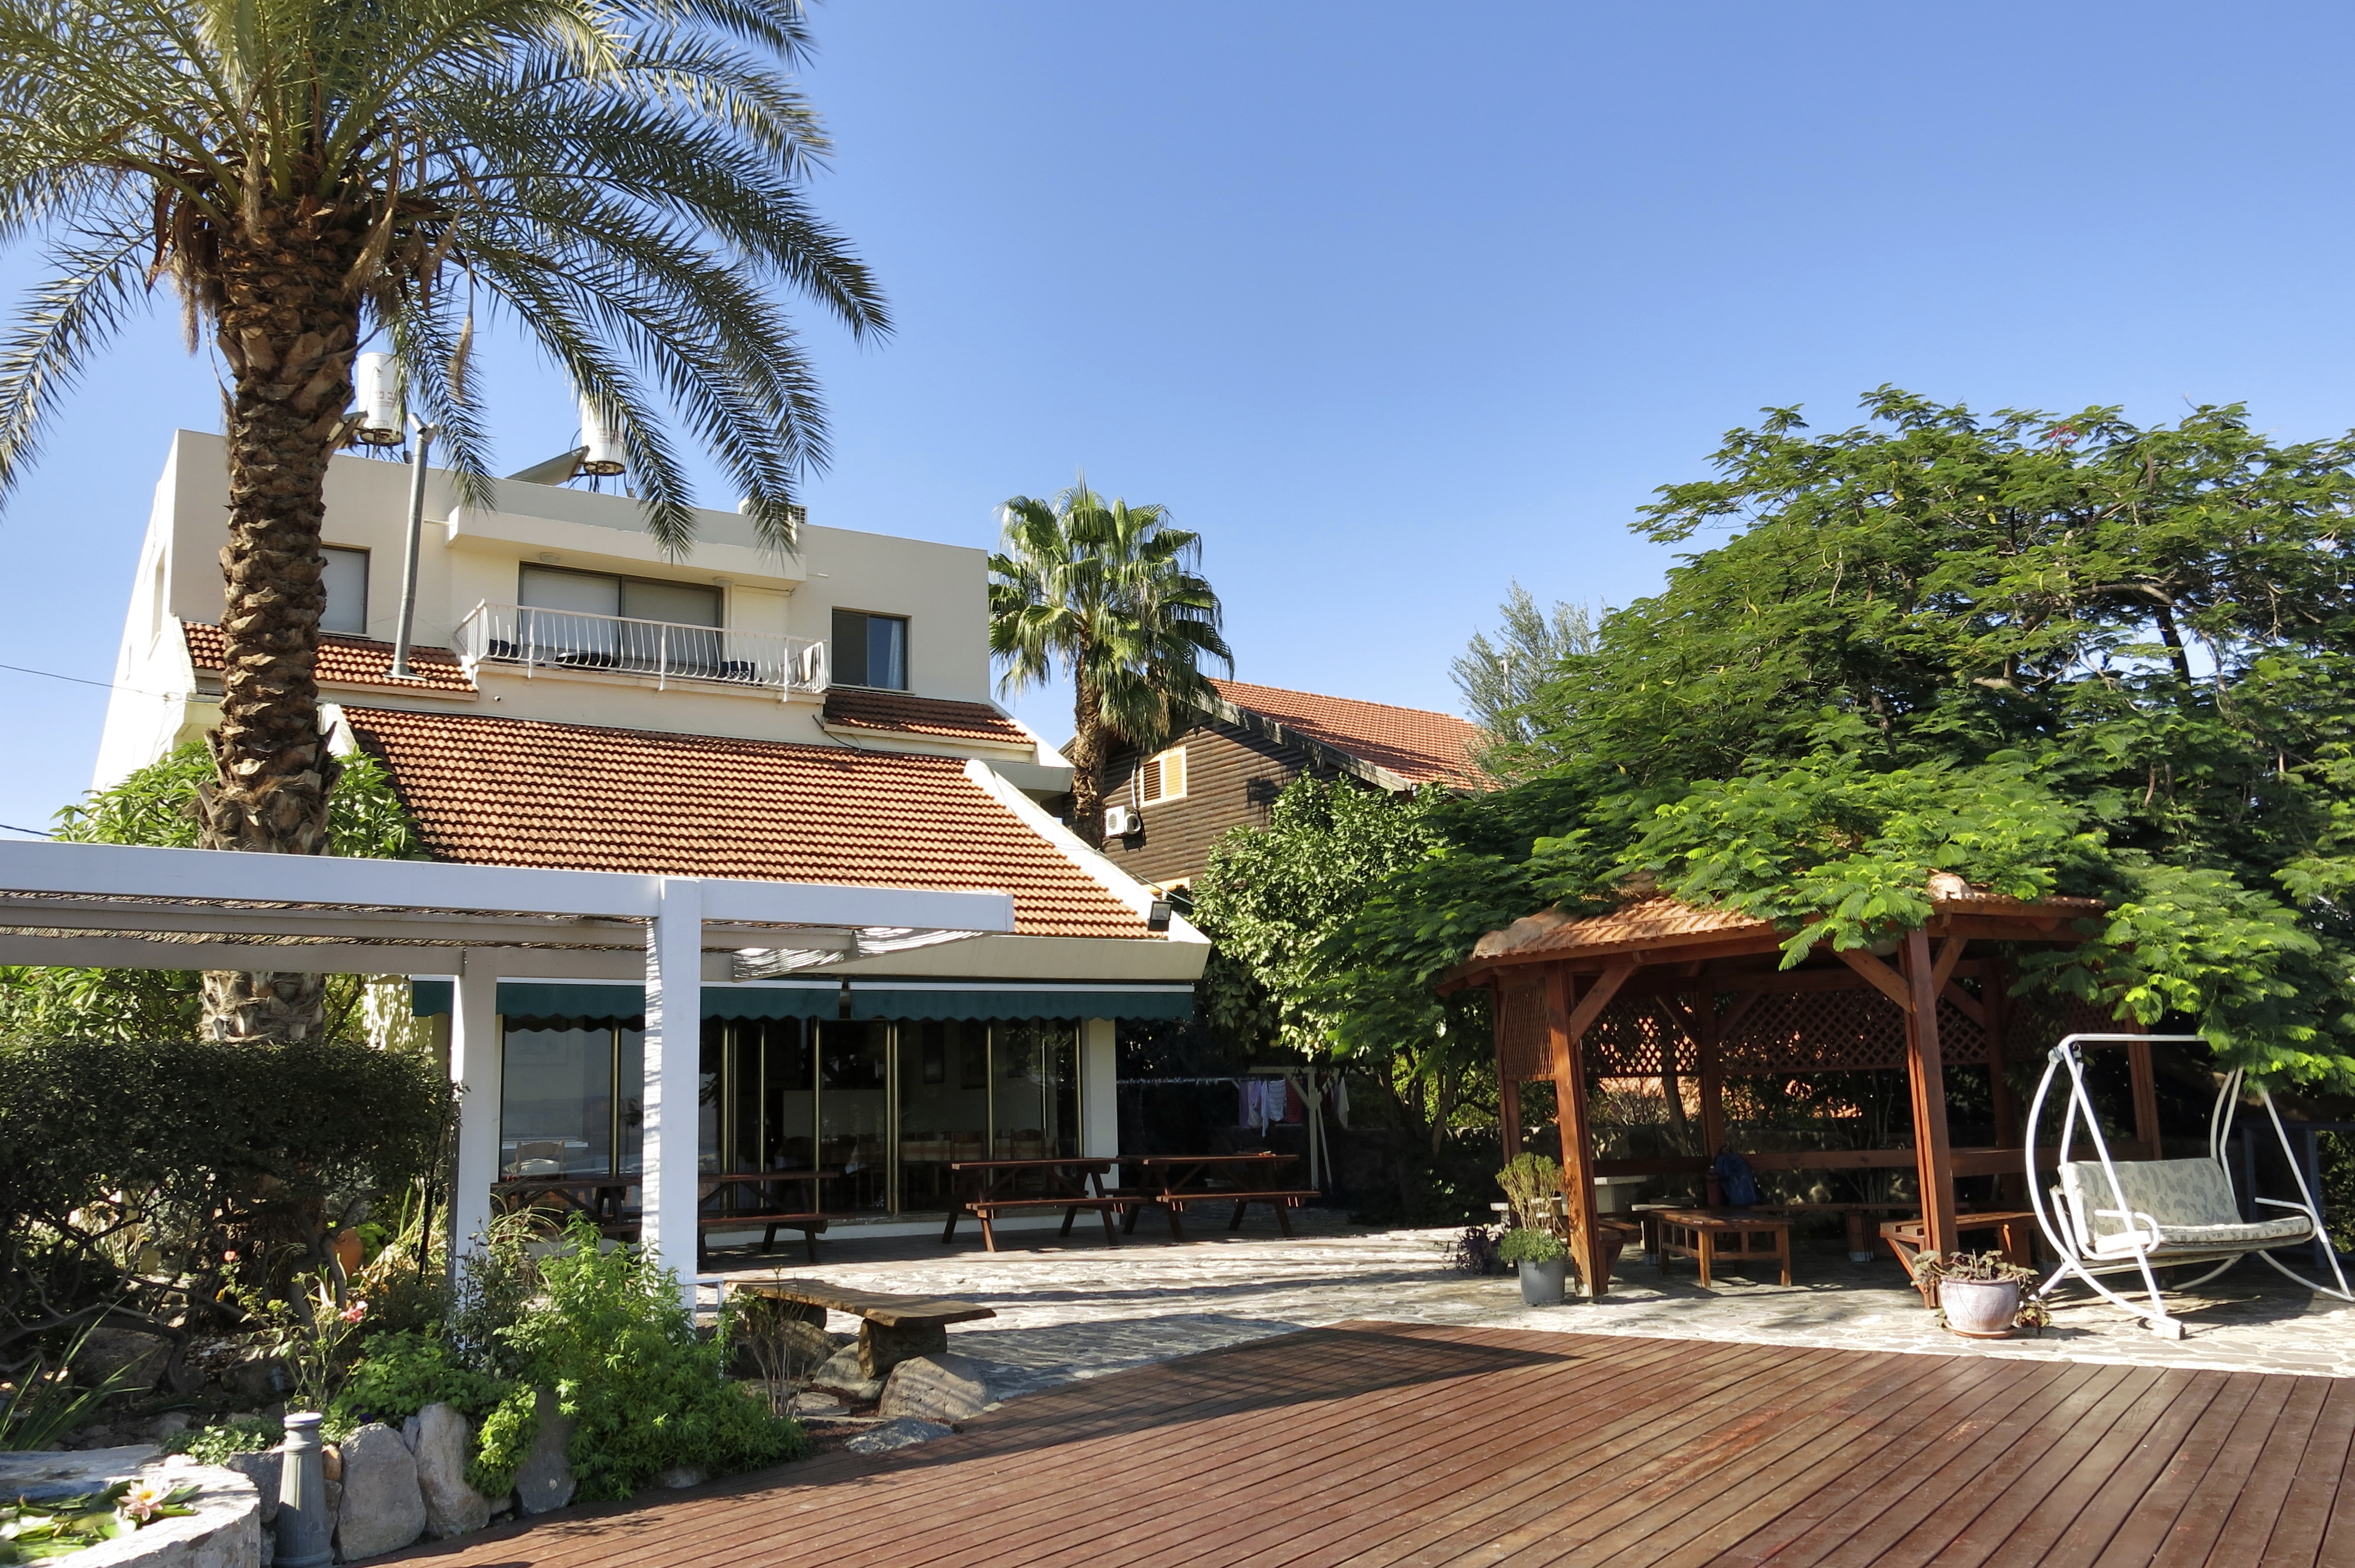 Beit Bracha Guest House, Migdal (the Galilee)